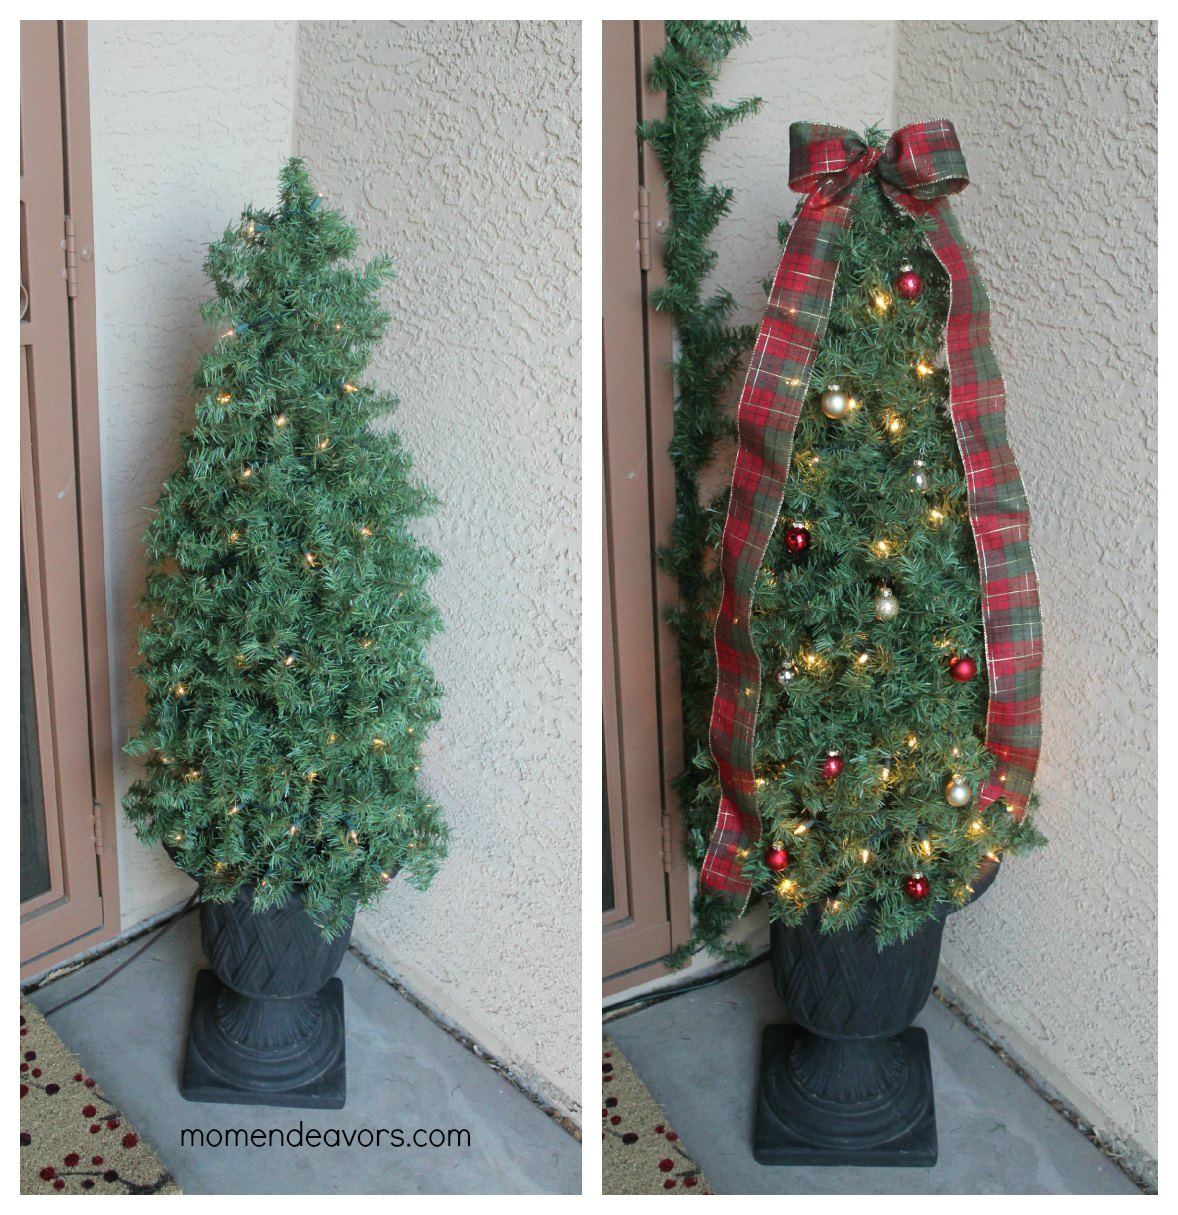 Christmas Topiary Decor.Diy Decorative Topiary Christmas Trees